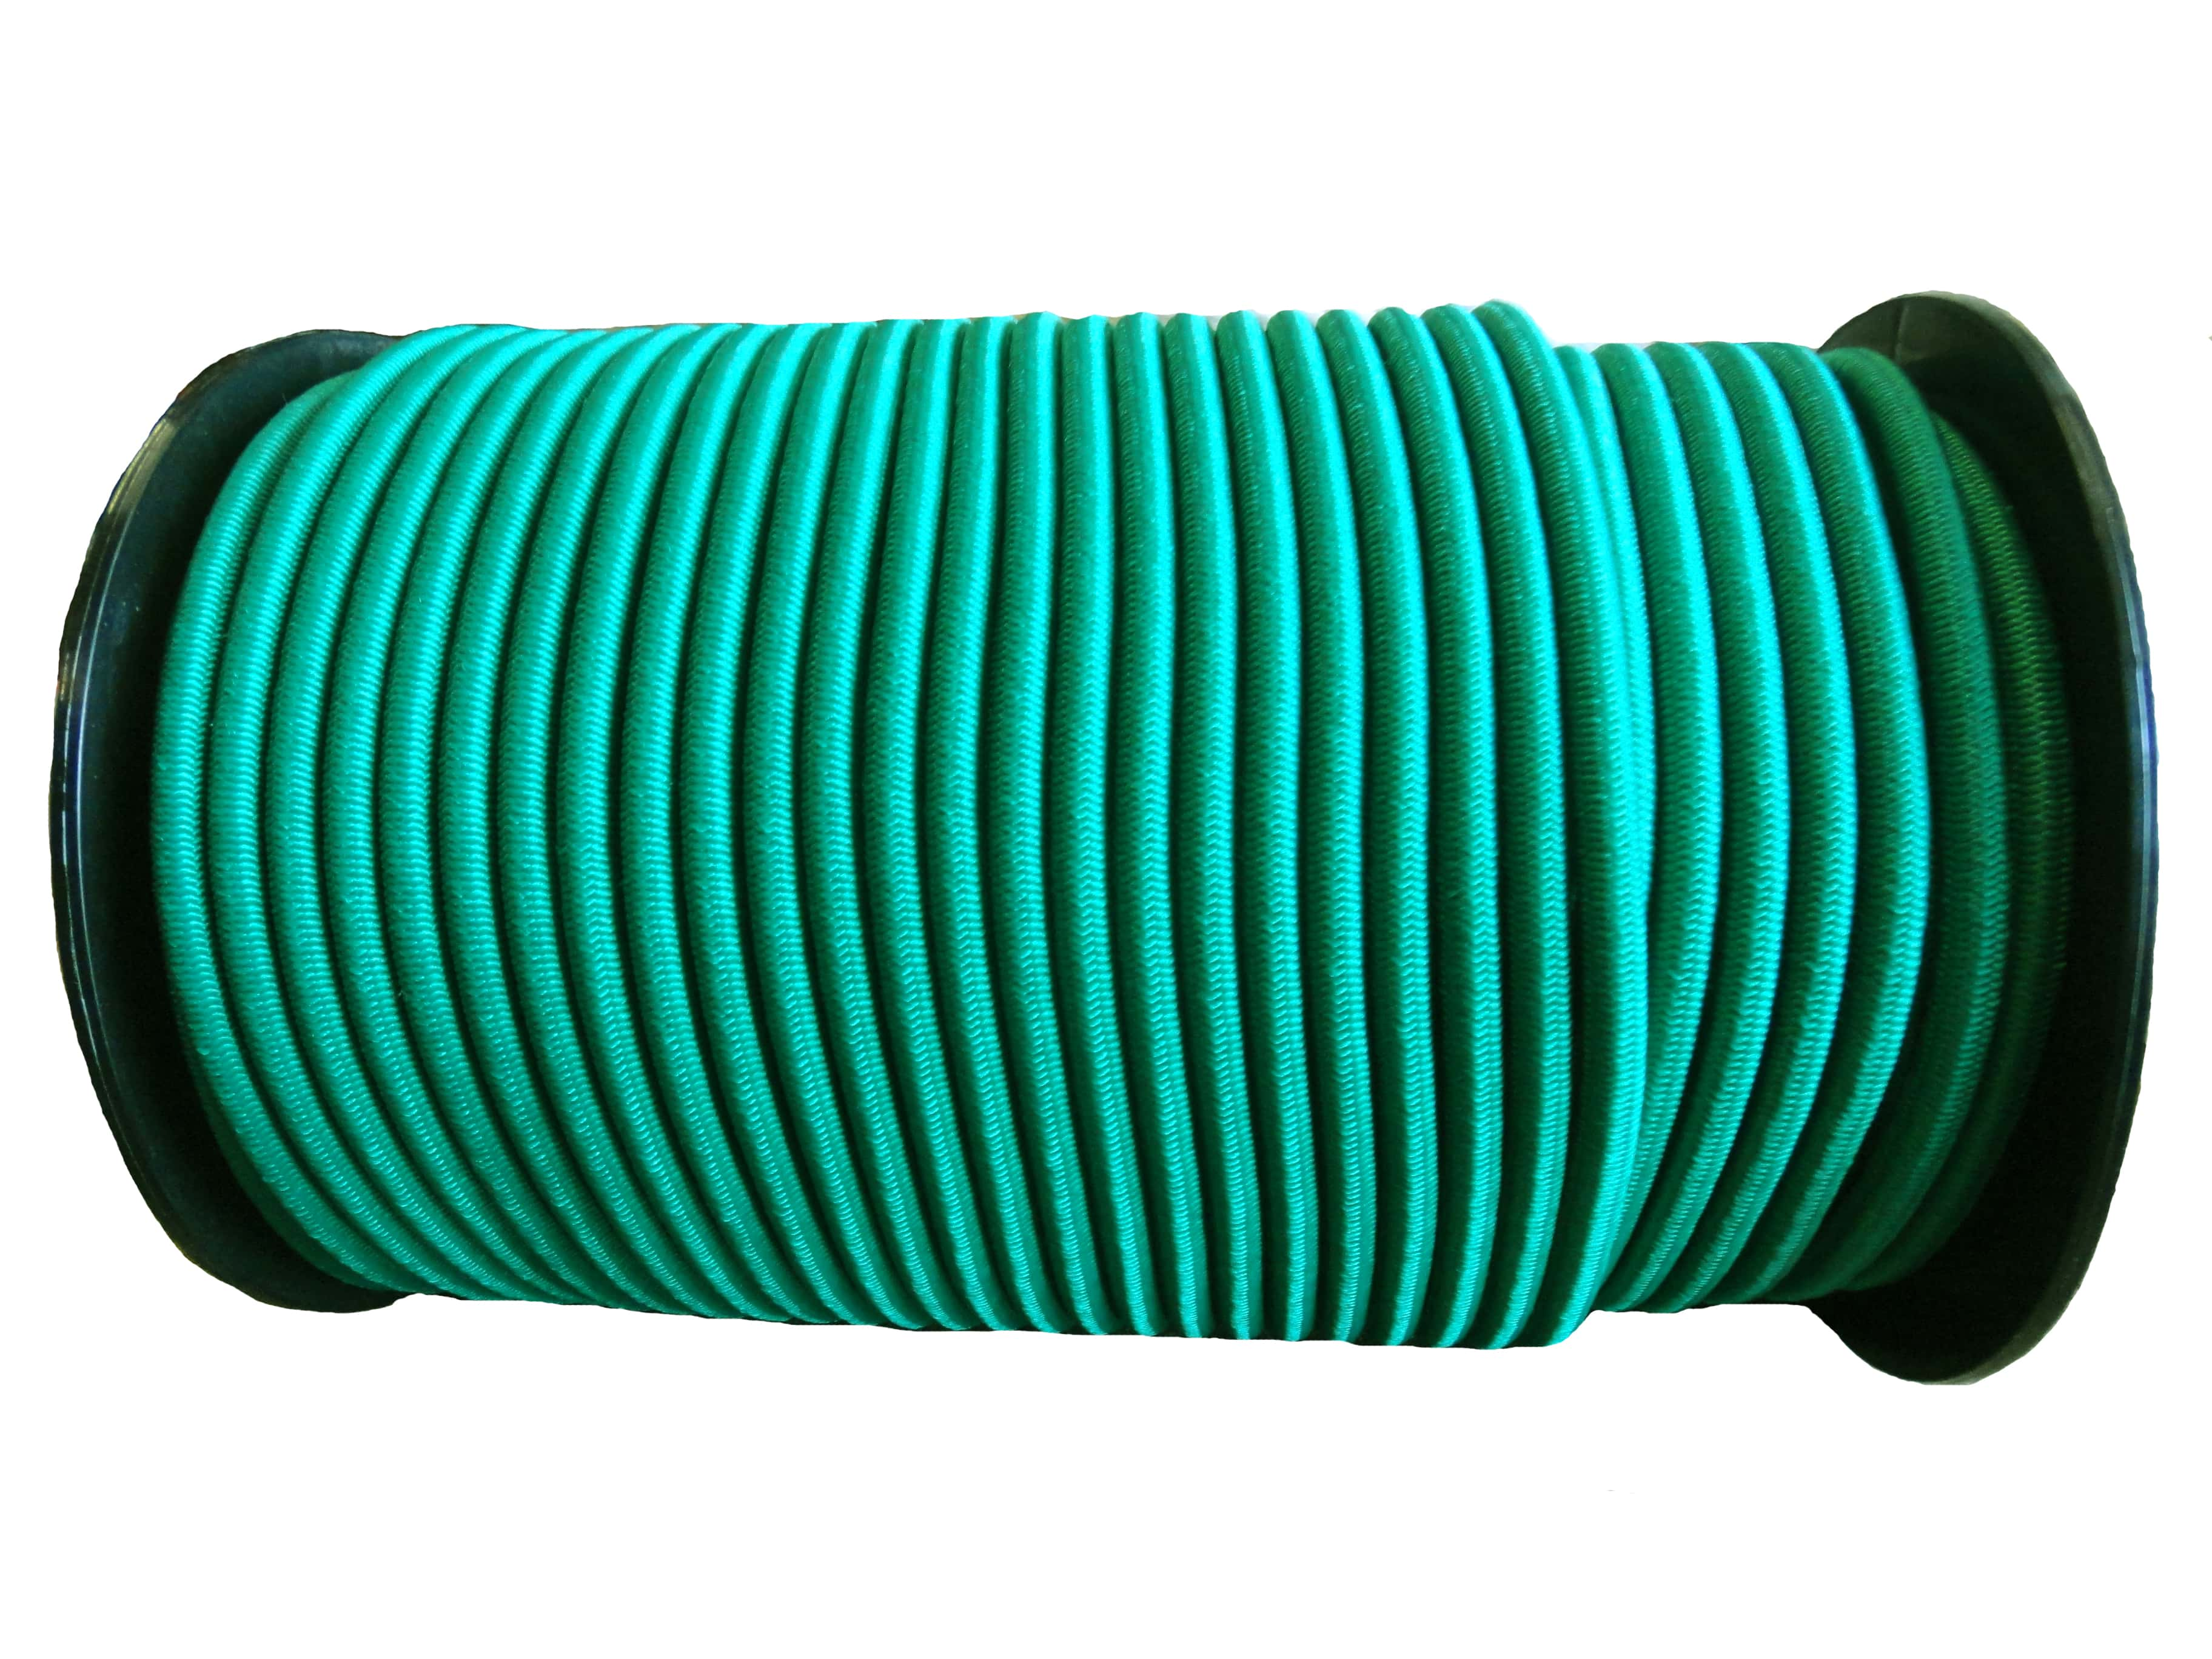 8mm Green Tent Shock Cord